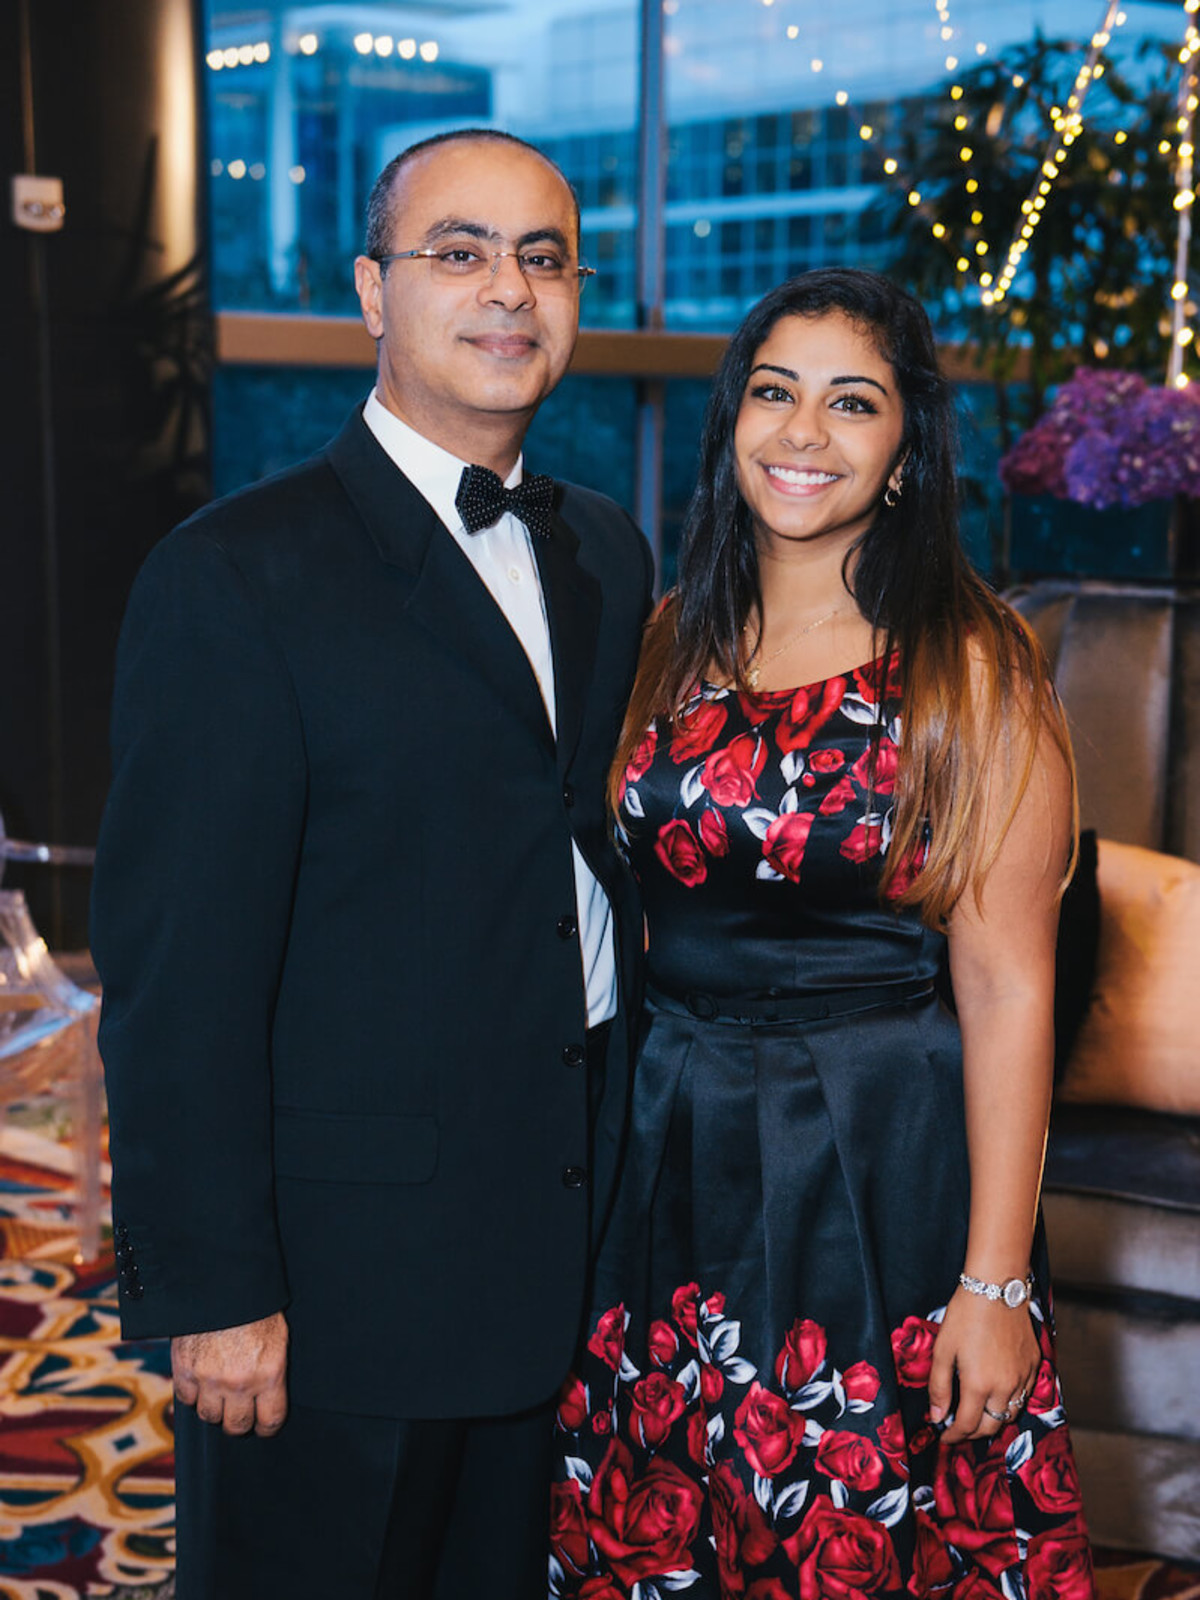 Dr. Maged Mina, Marina Mina at UTHealth Constellation Gala